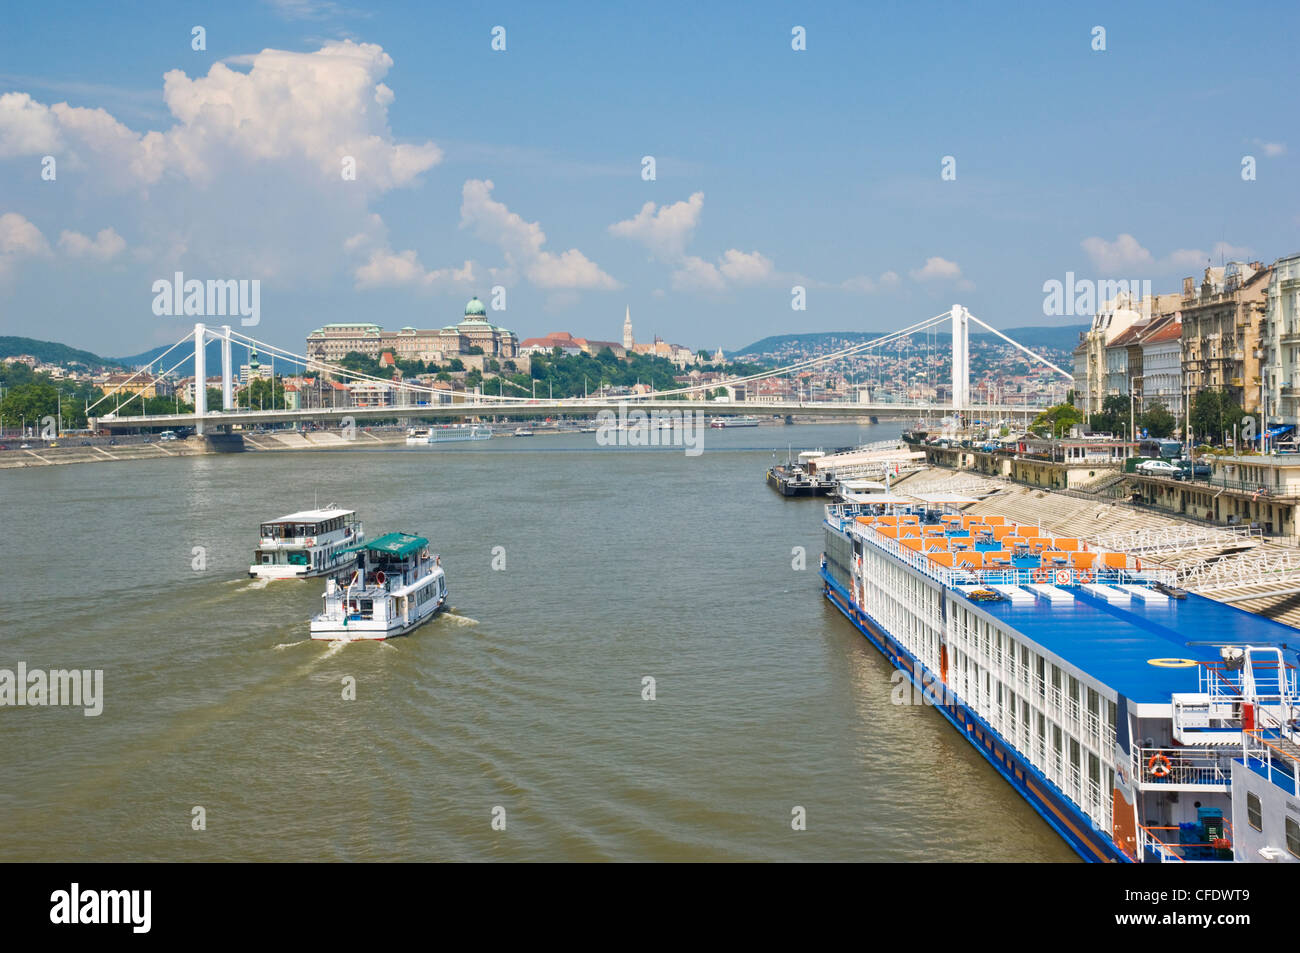 View of Elizabeth Bridge (Erzebet hid), and cruise boats on the River Danube, Budapest, Hungary, Europe - Stock Image